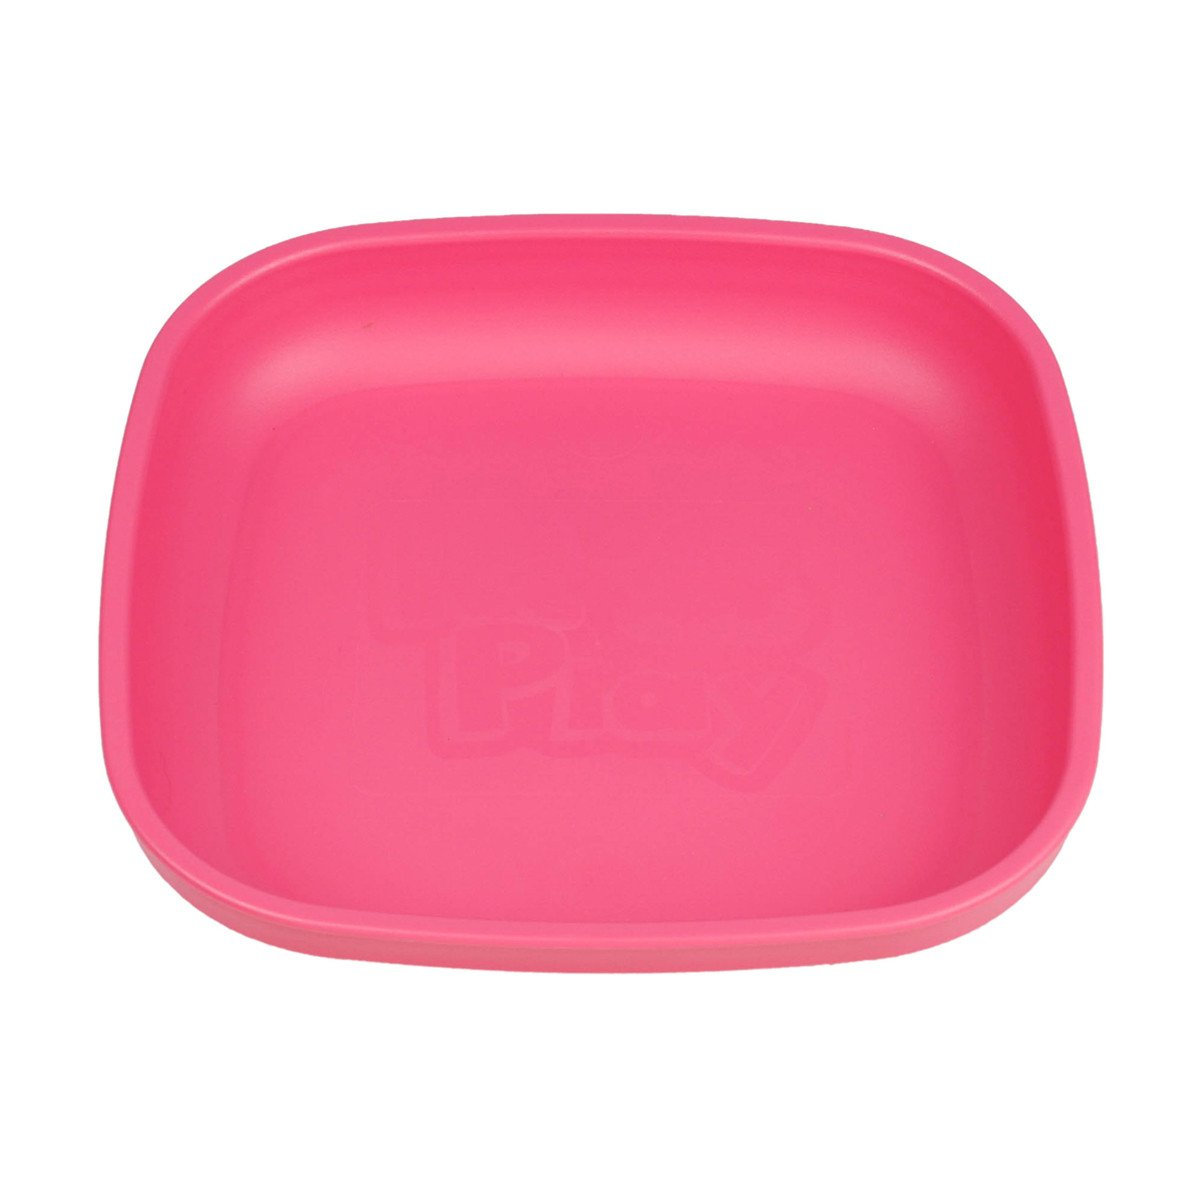 Replay Plate  Bright Pink - Replay - Little Earth Nest - 5